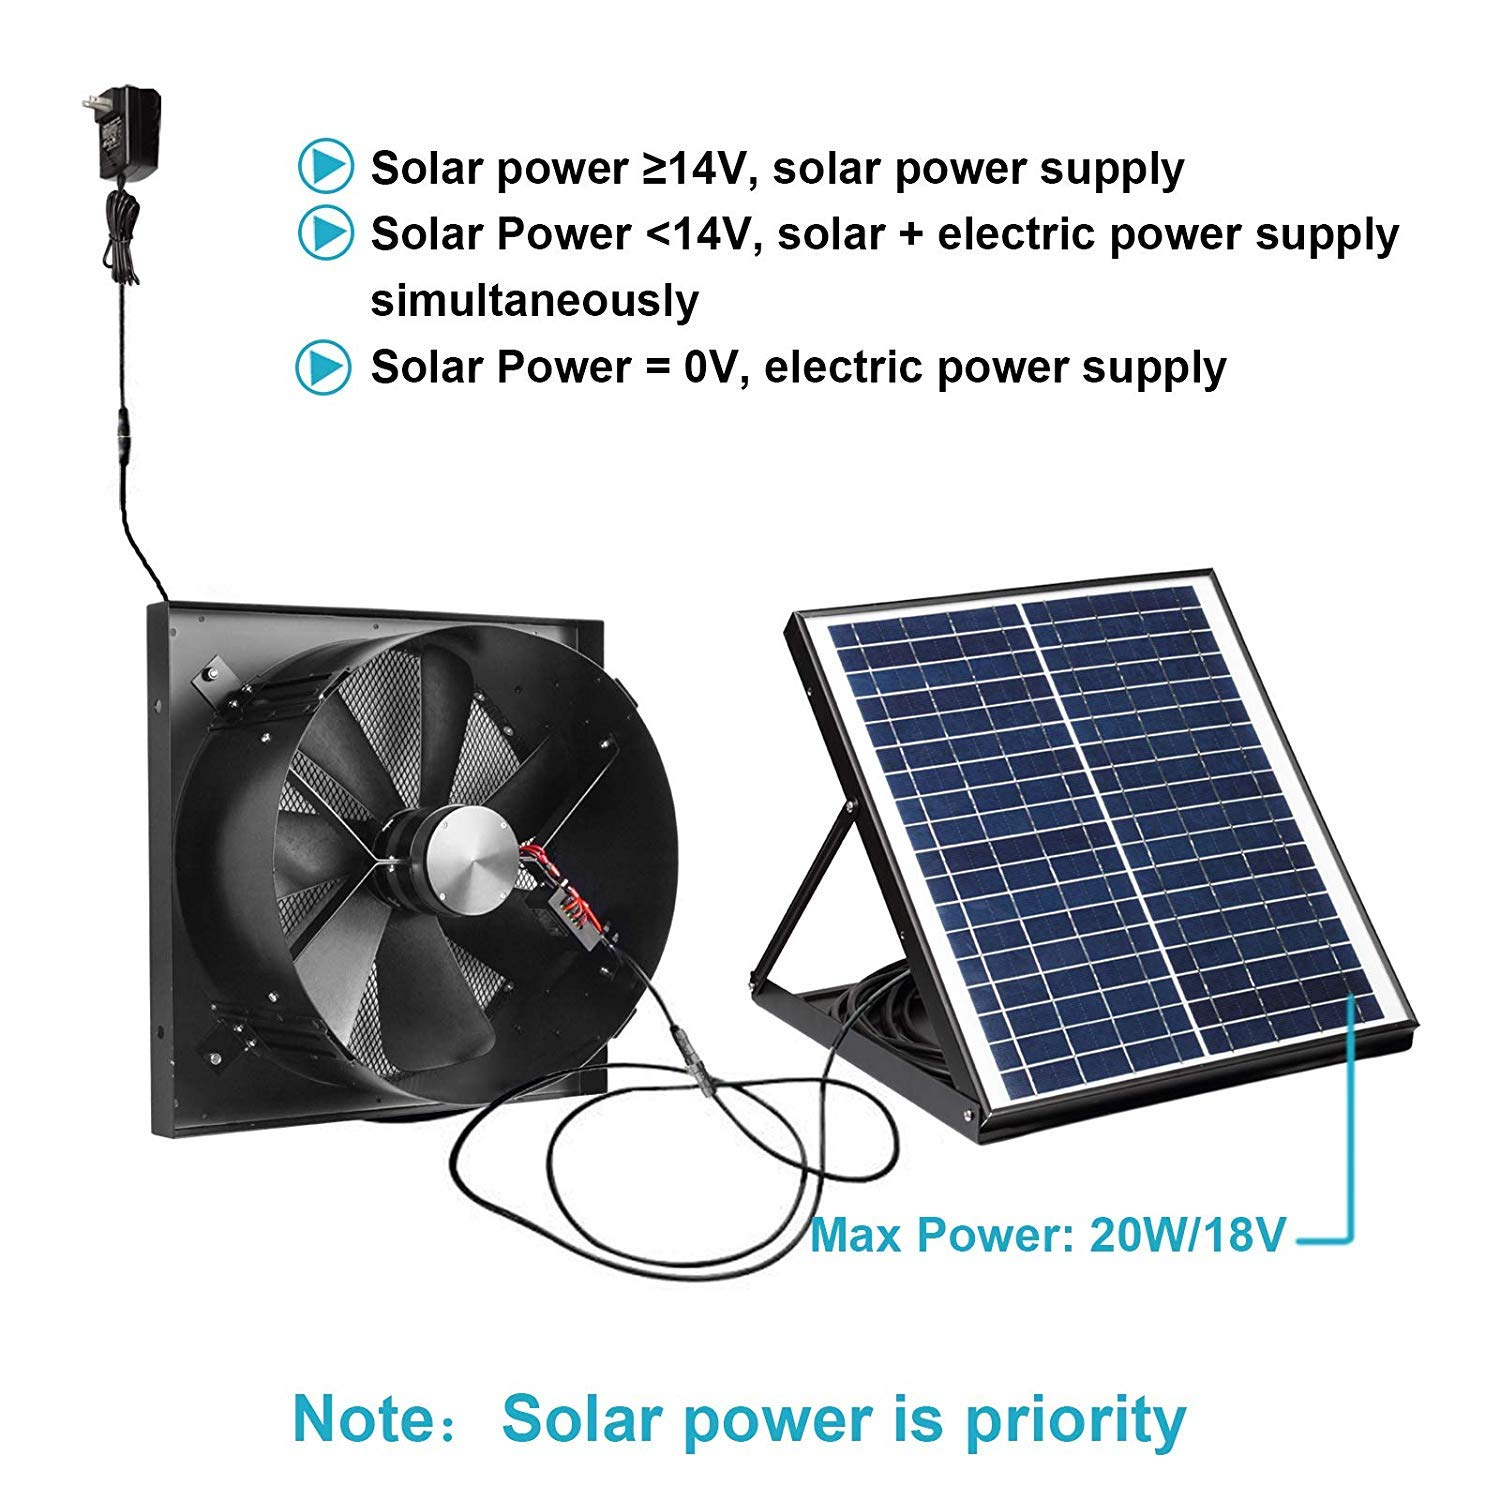 GBGS Solar Powered Exhaust Fan AC Power Backup, 1750CFM, 4200sq/ft  Ventilation, IP68 Brushless DC Motor, Adjustable Solar Panel, 40db, 47 5ft  Cable,